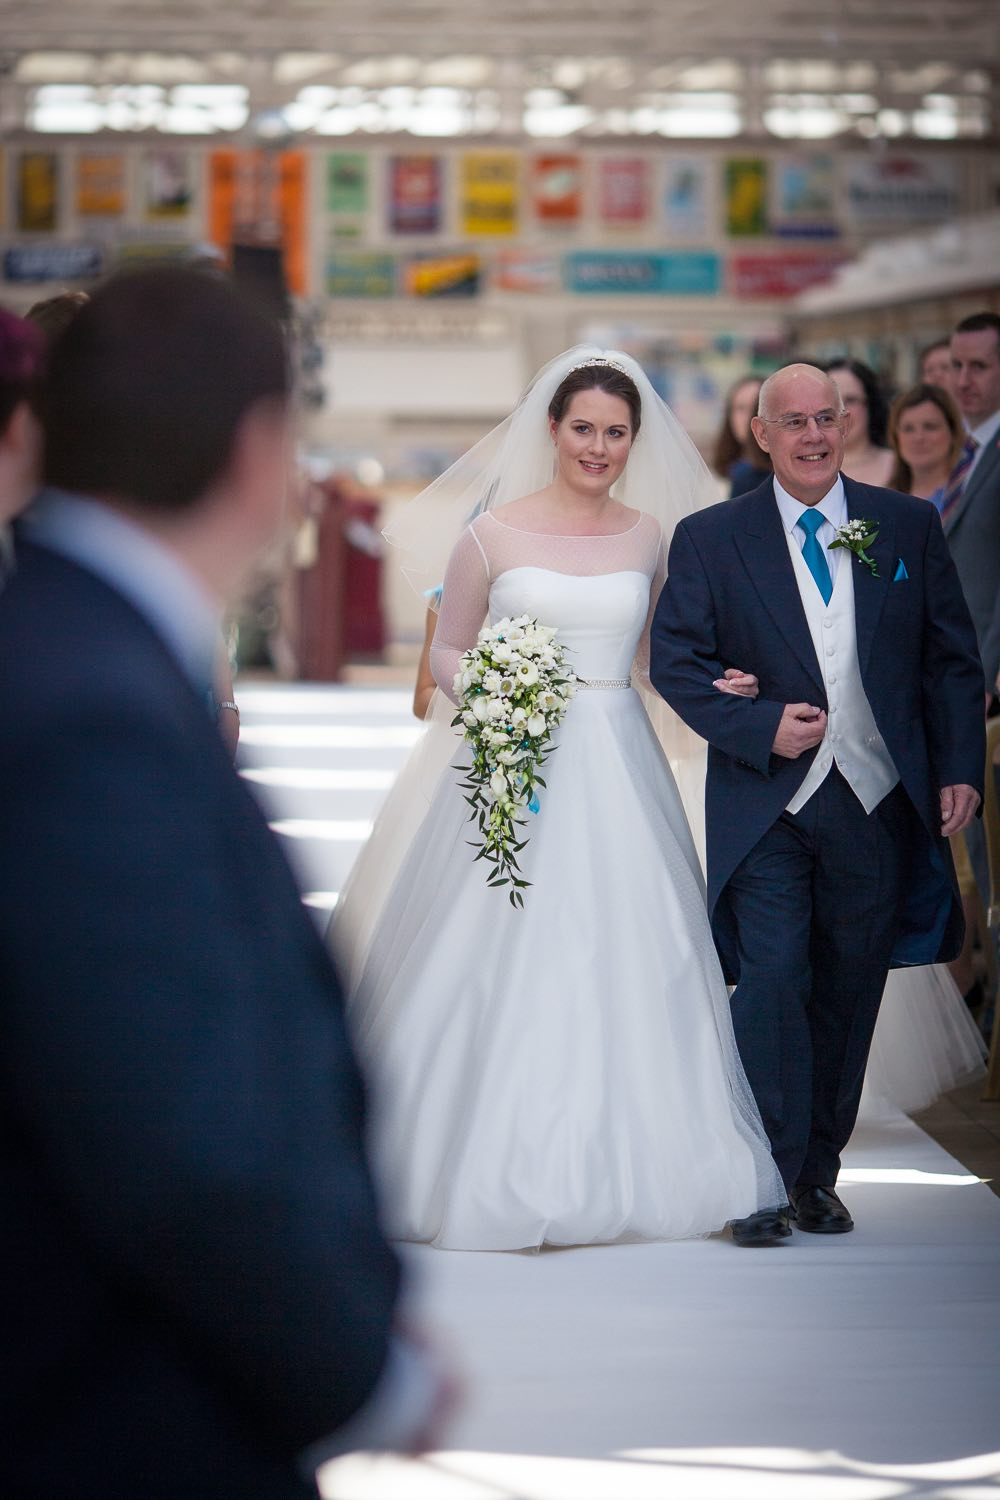 Emma walking down the aisle with her Dad - Buckinghamshire Railway Centre wedding video and photography by Veiled Productions. Fun, unique wedding films for modern, family focused couples.